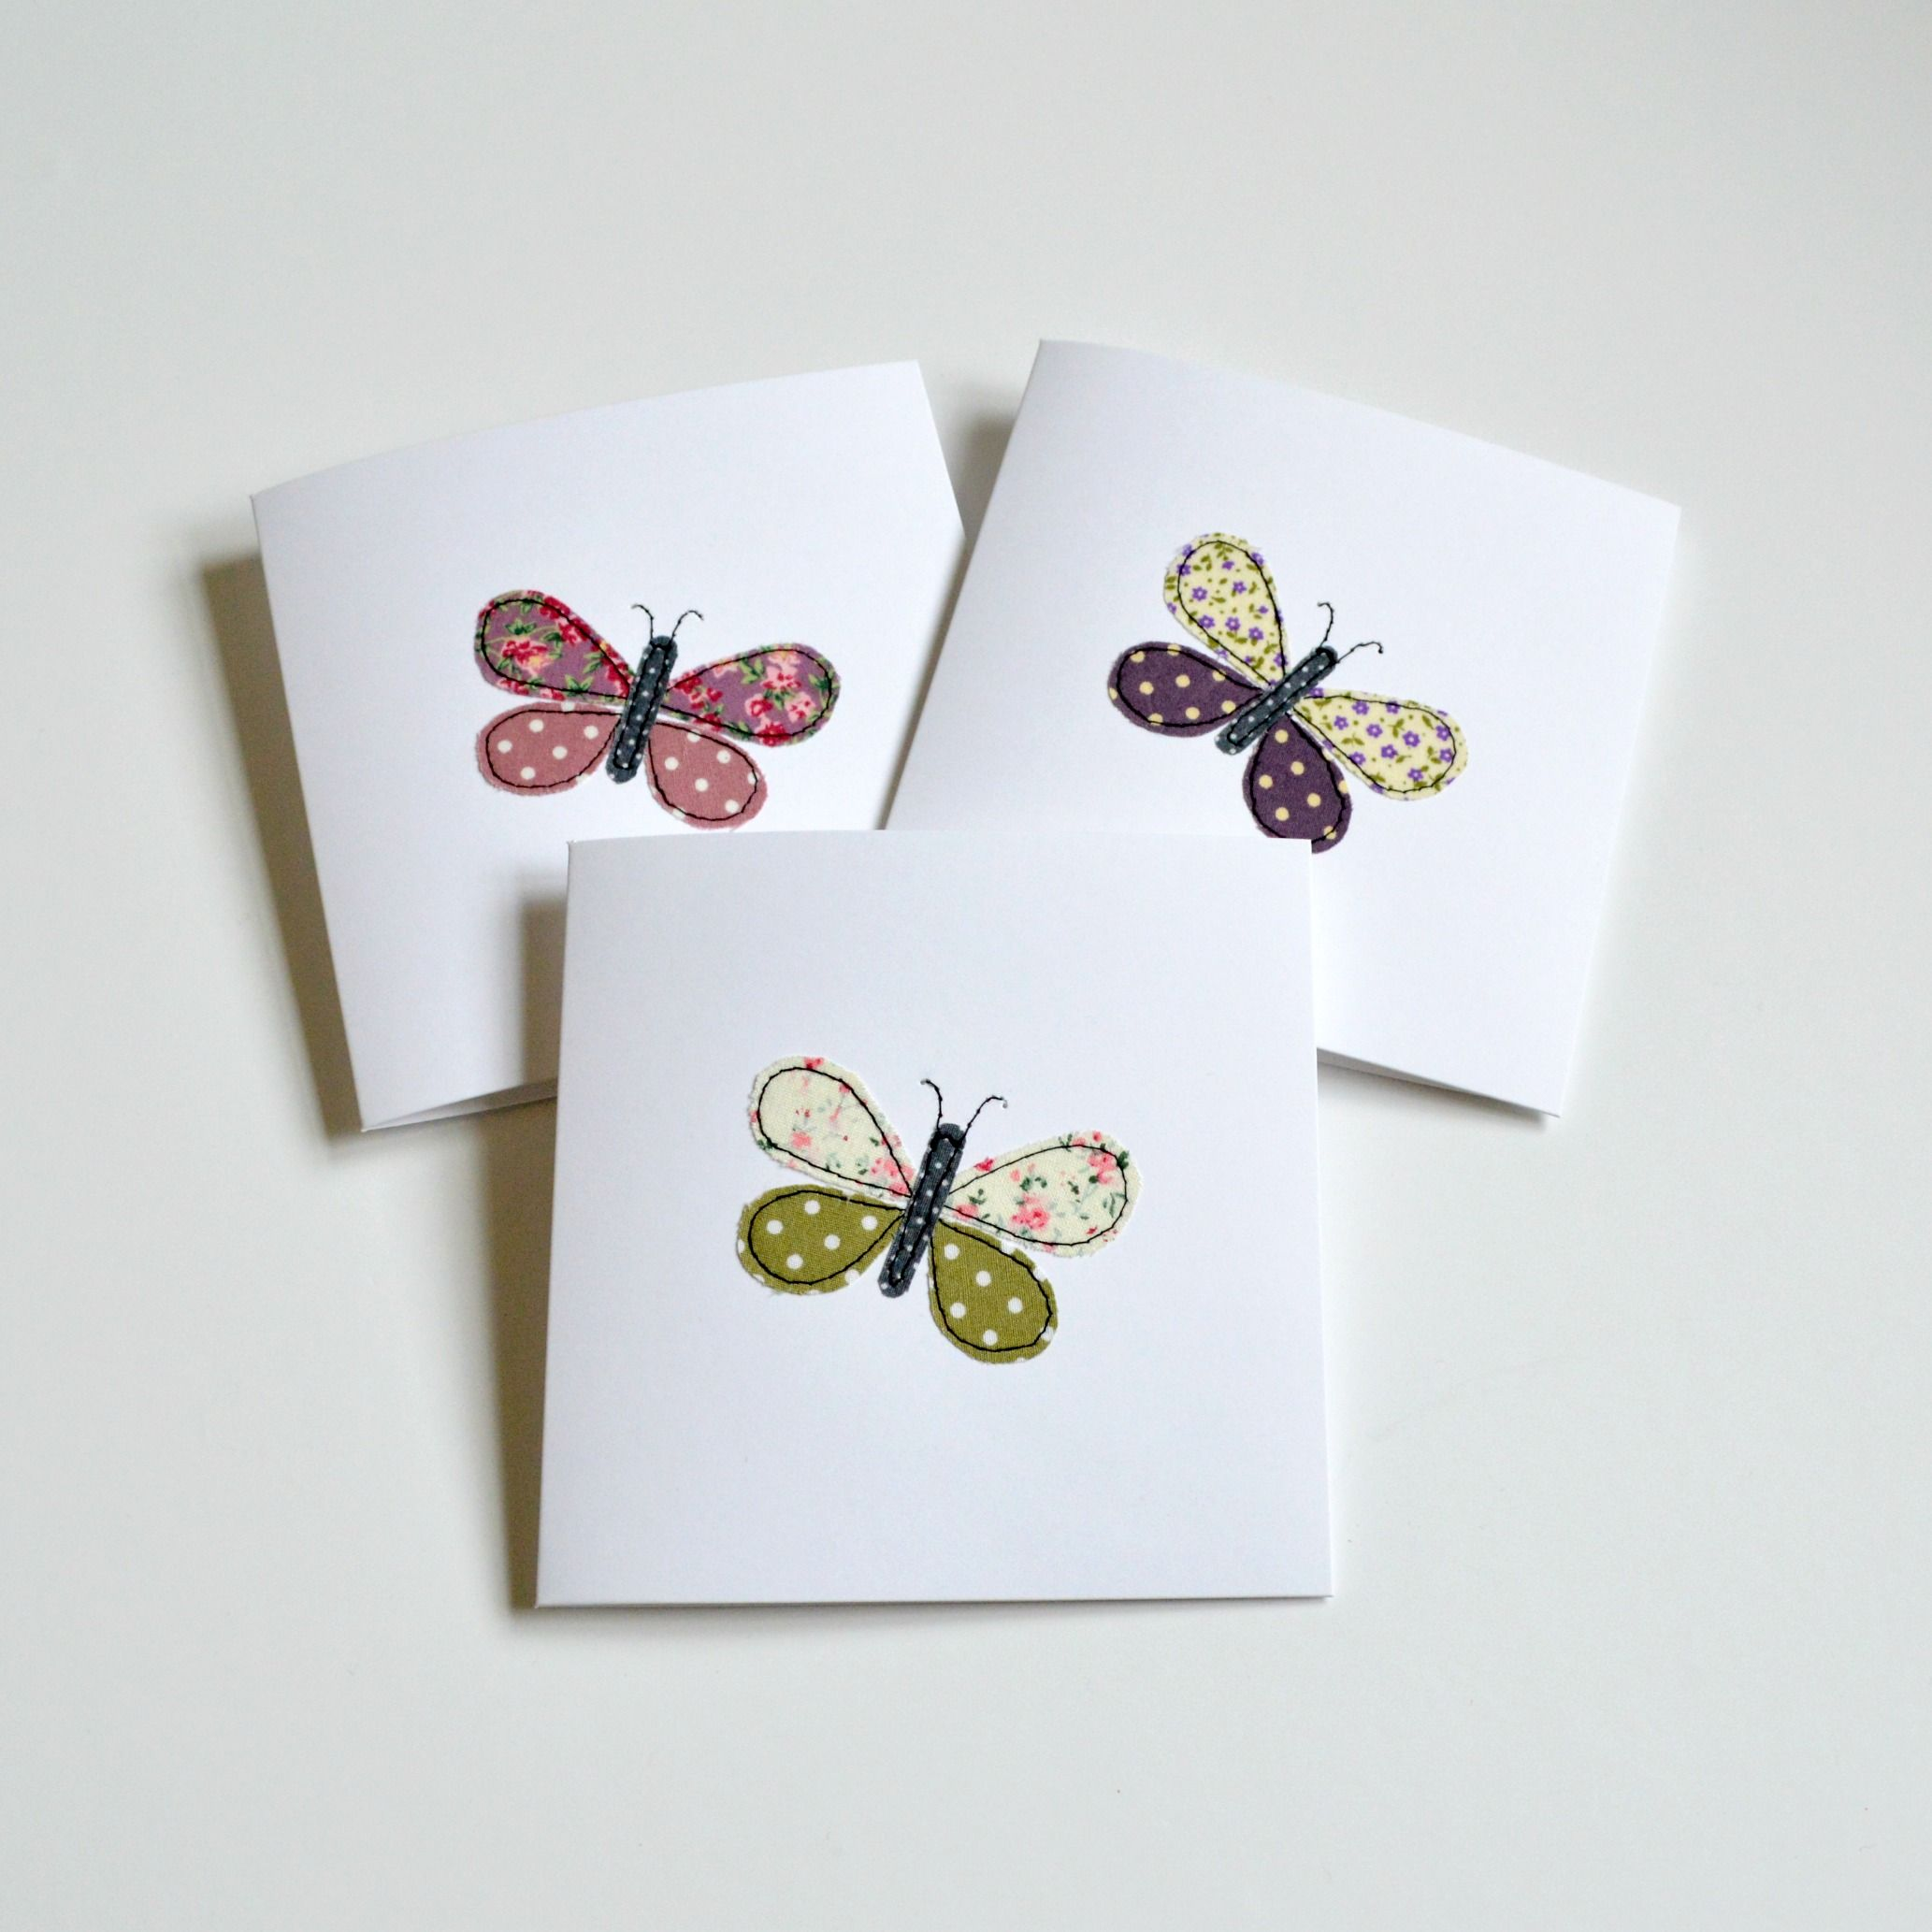 Butterfly greetings cards little pieces of fabric stitched using butterfly greetings cards little pieces of fabric stitched using freehand machine embroidery handmade by stitch kristyandbryce Image collections